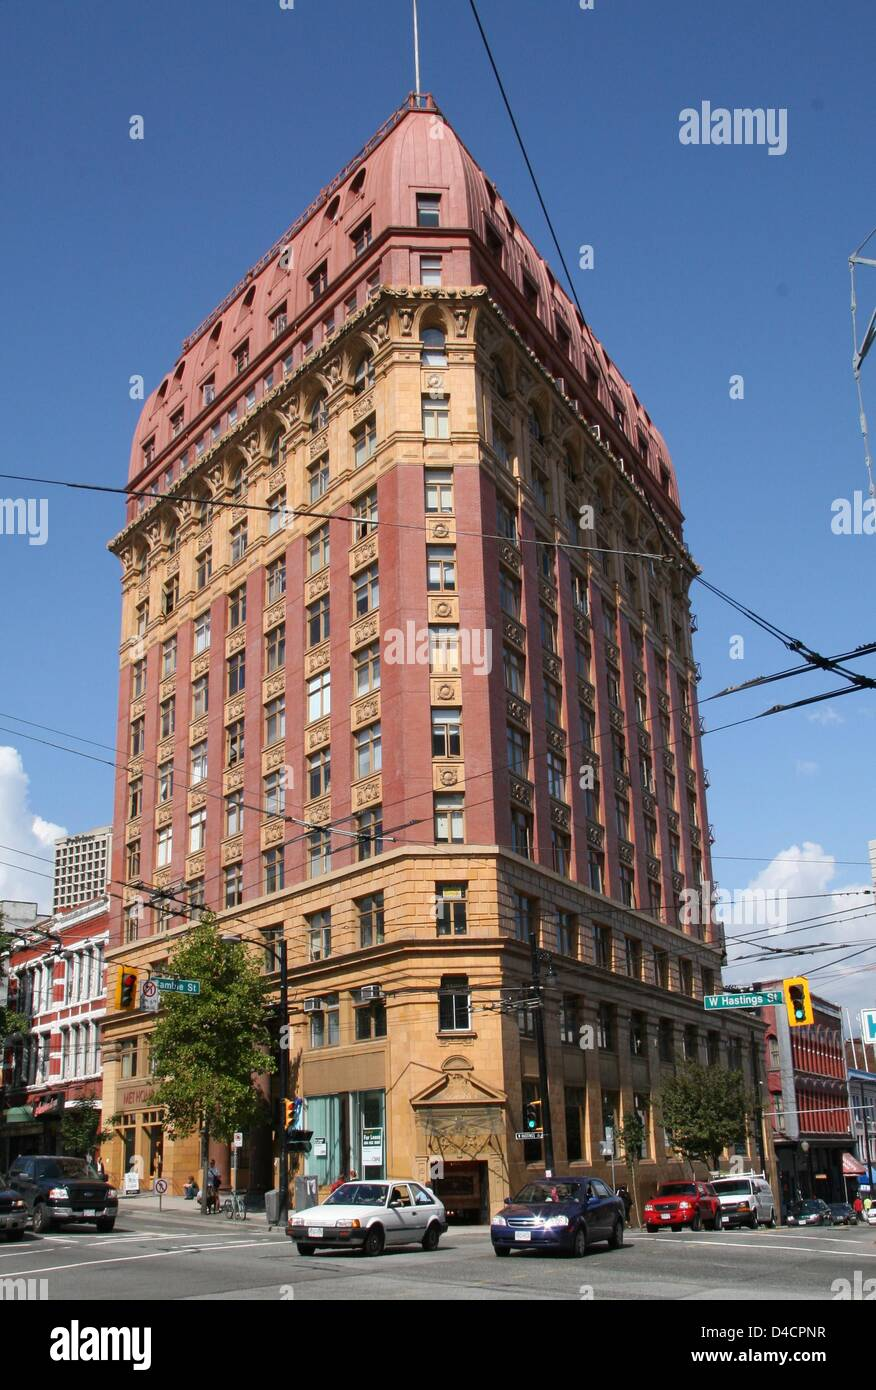 The picture shows the Dominion Building in the Gastown district in Vancouver, Canada, 07 September 2007. The Dominion - Stock Image